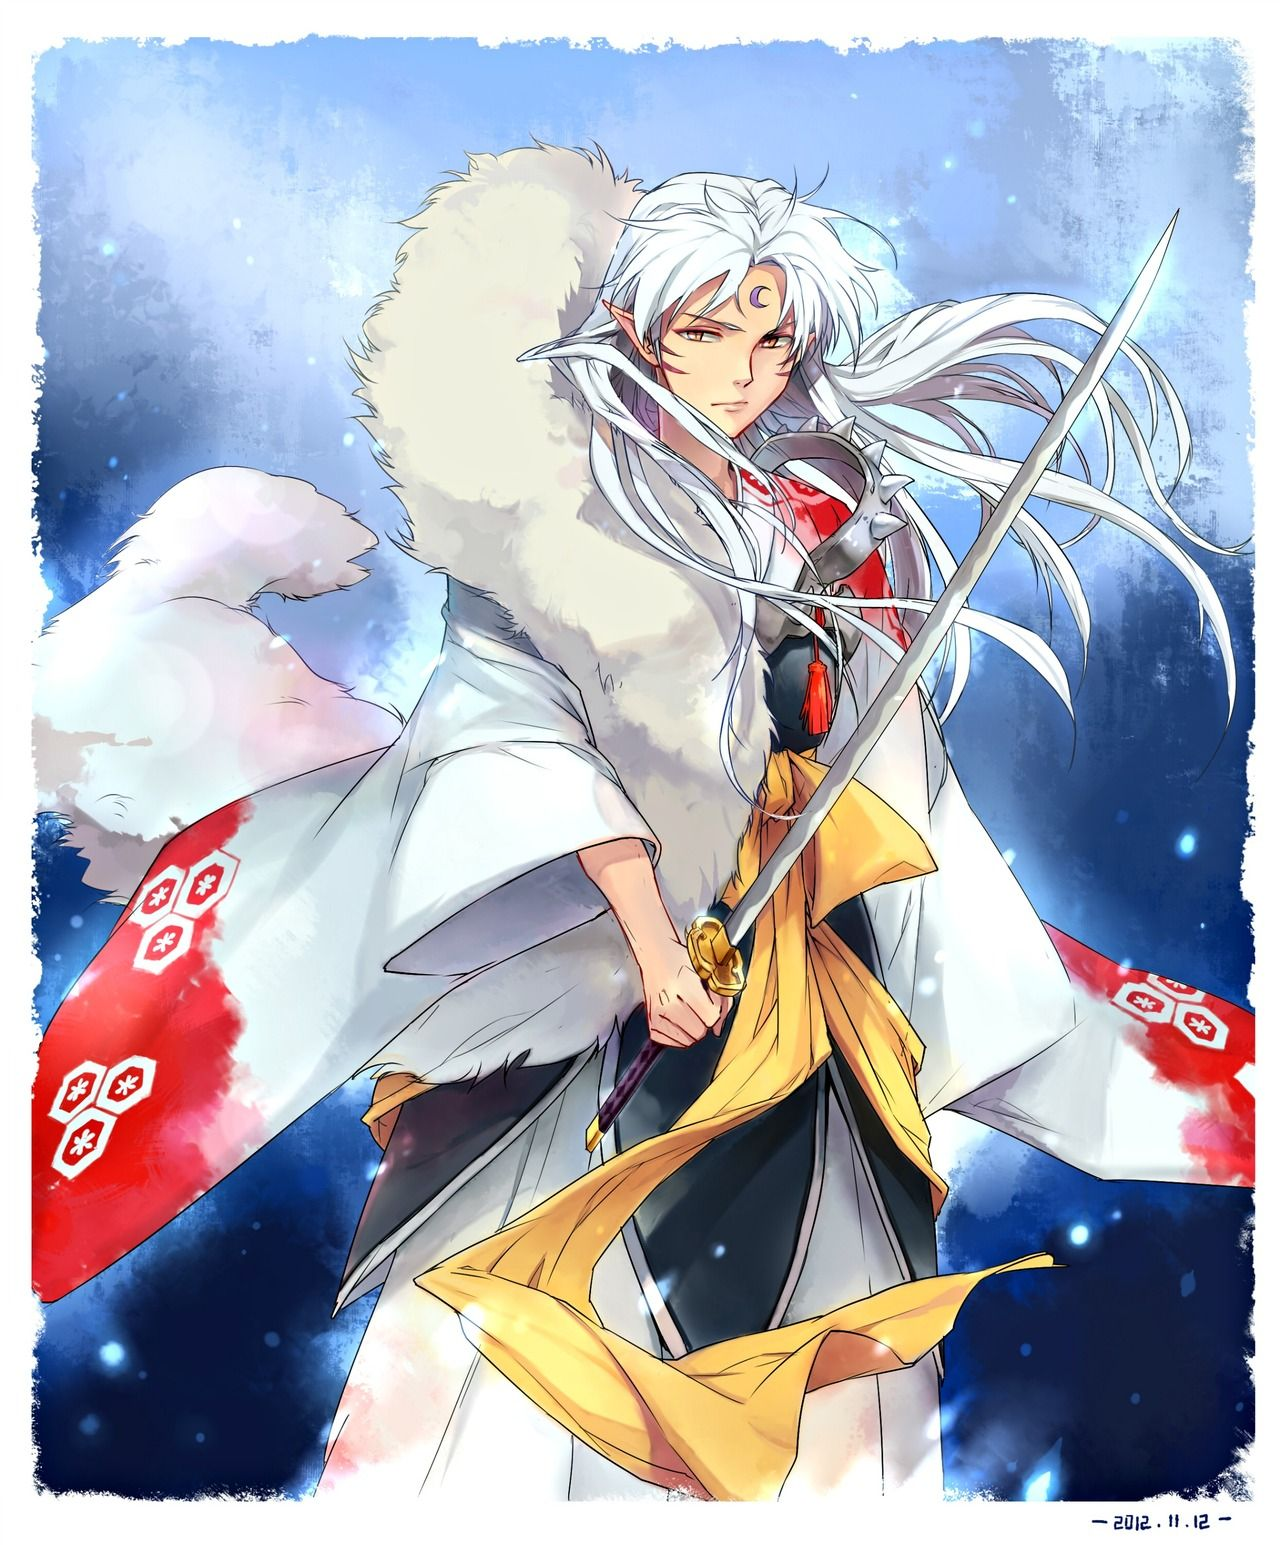 Anime Characters Named Rin : Lord sesshoumaru from inuyasha